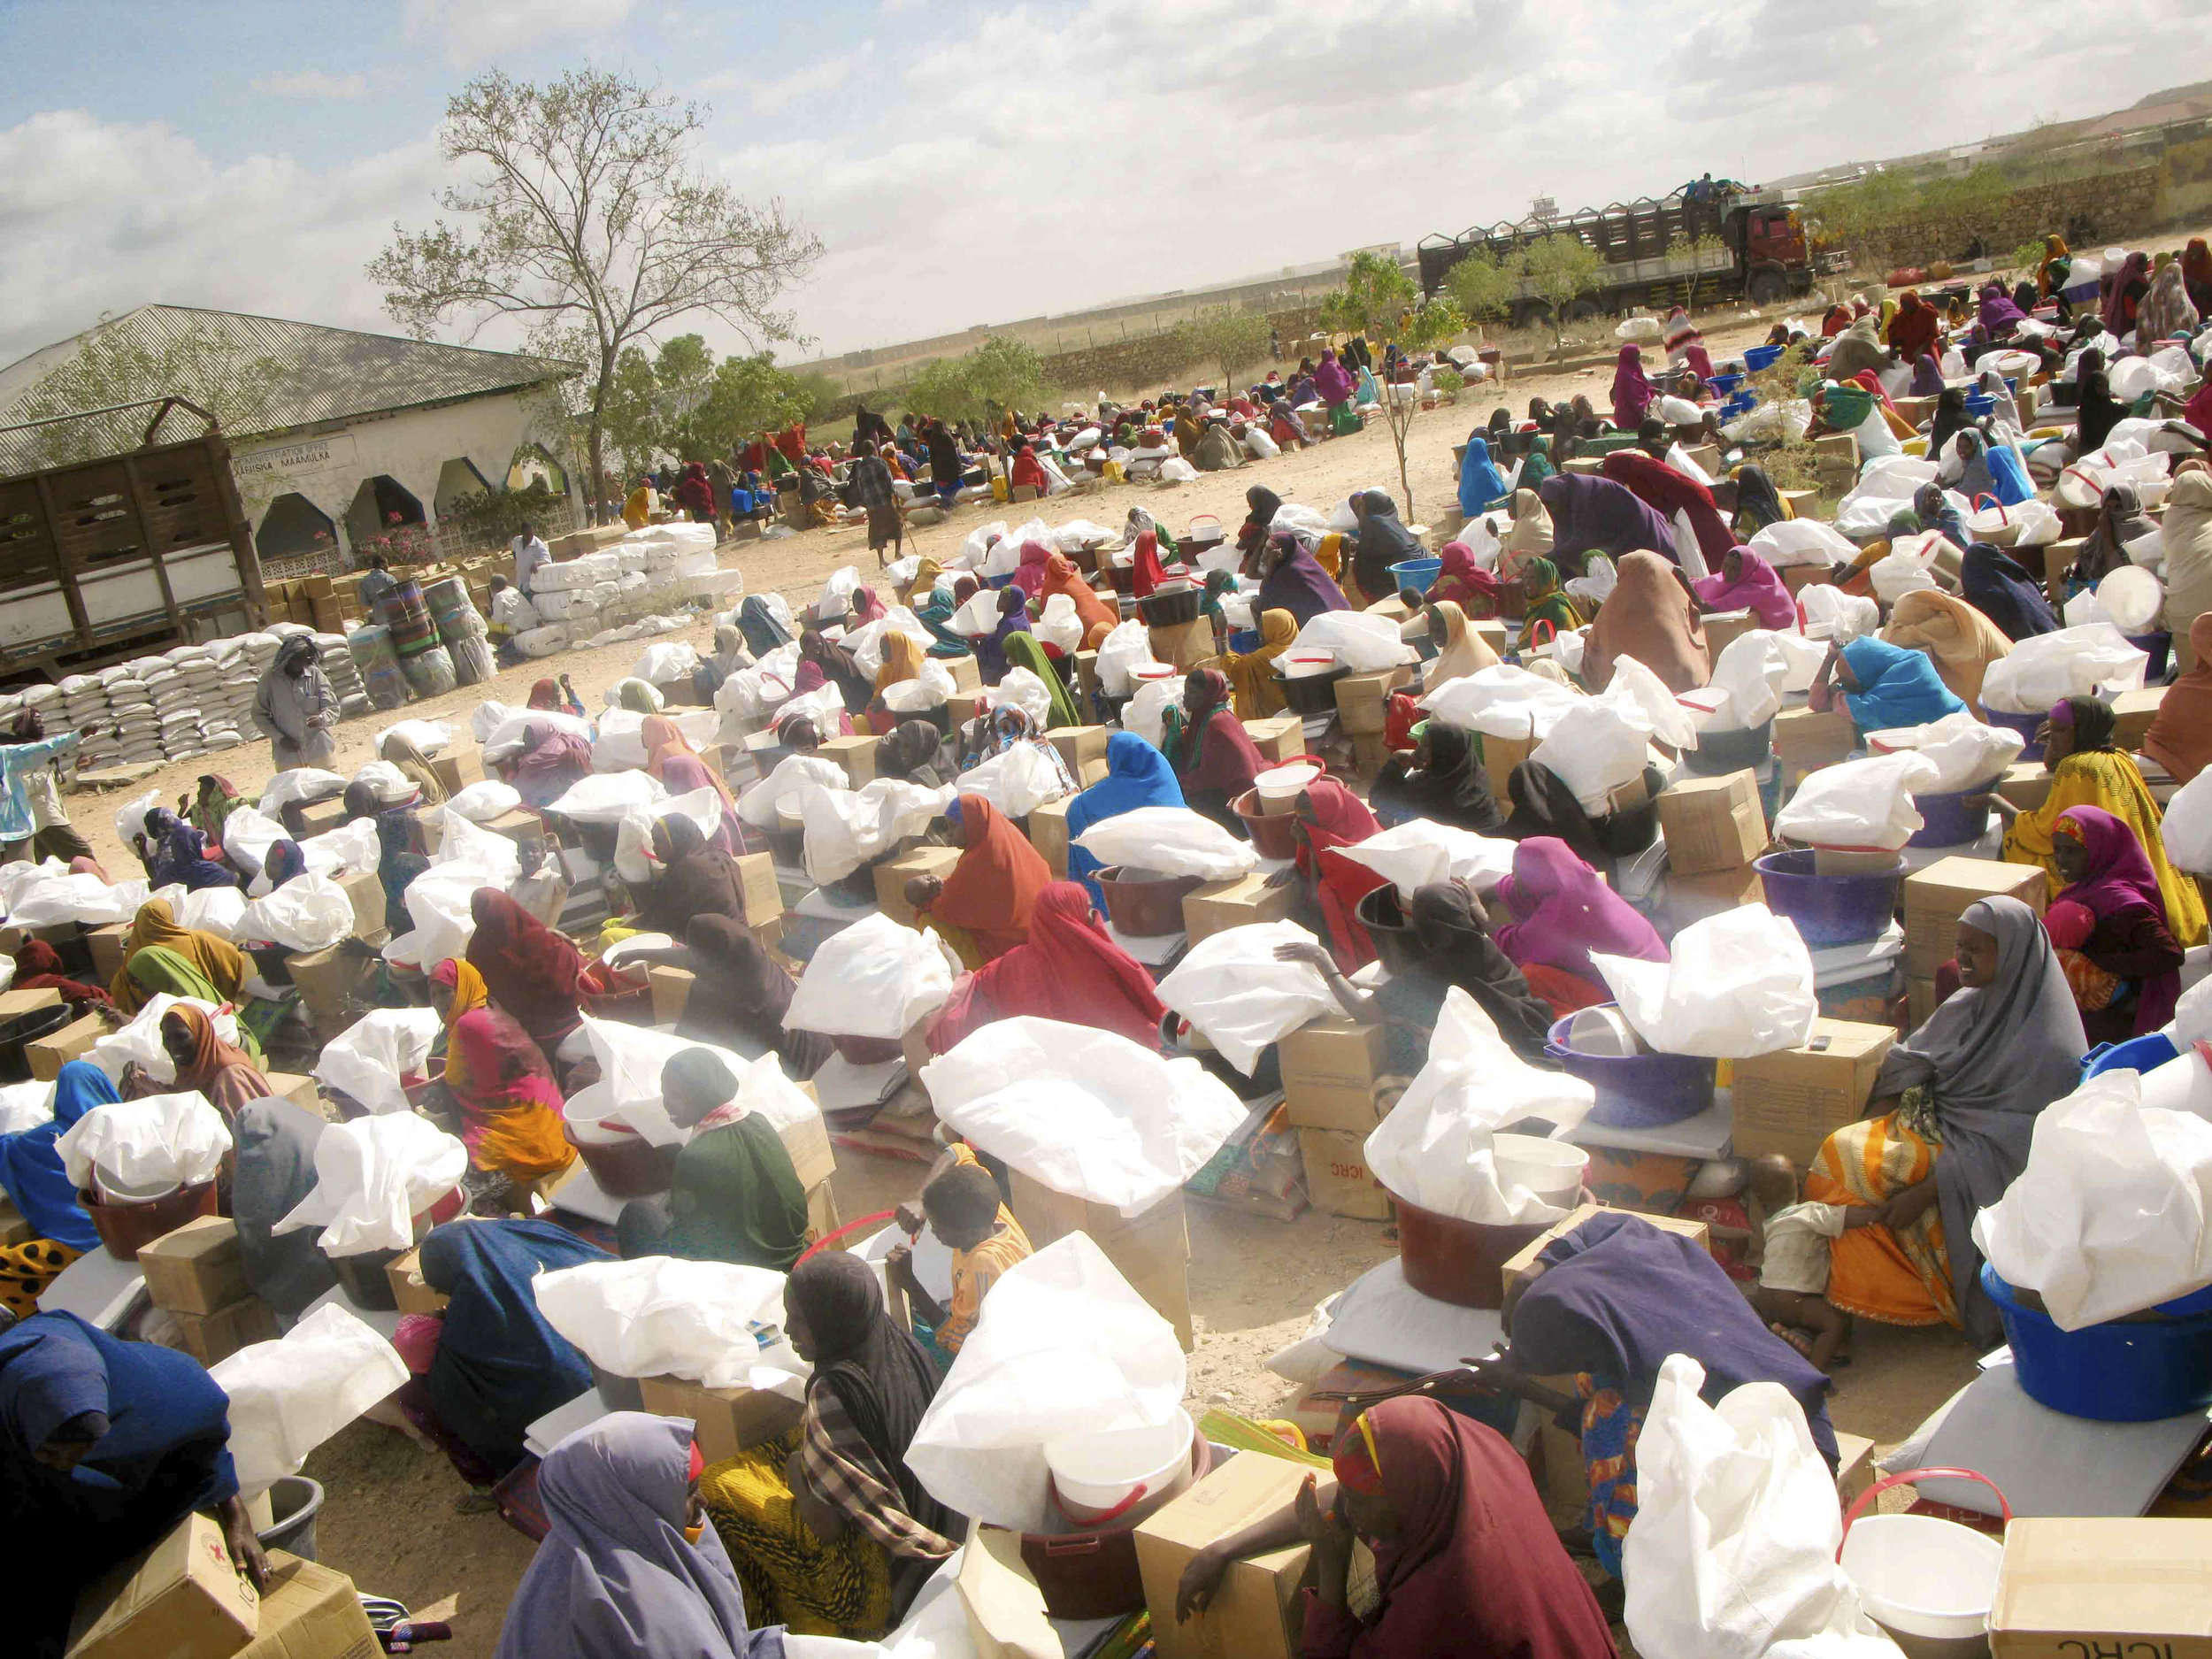 Beletweyne district, Eljale village. The ICRC and the Somali Red Crescent Society distribute emergency assistance to more than 30,000 people to alleviate the effects of the flood. Women receive food - such as rice, oil and beans - blankets, mosquito nets and hygiene kits.